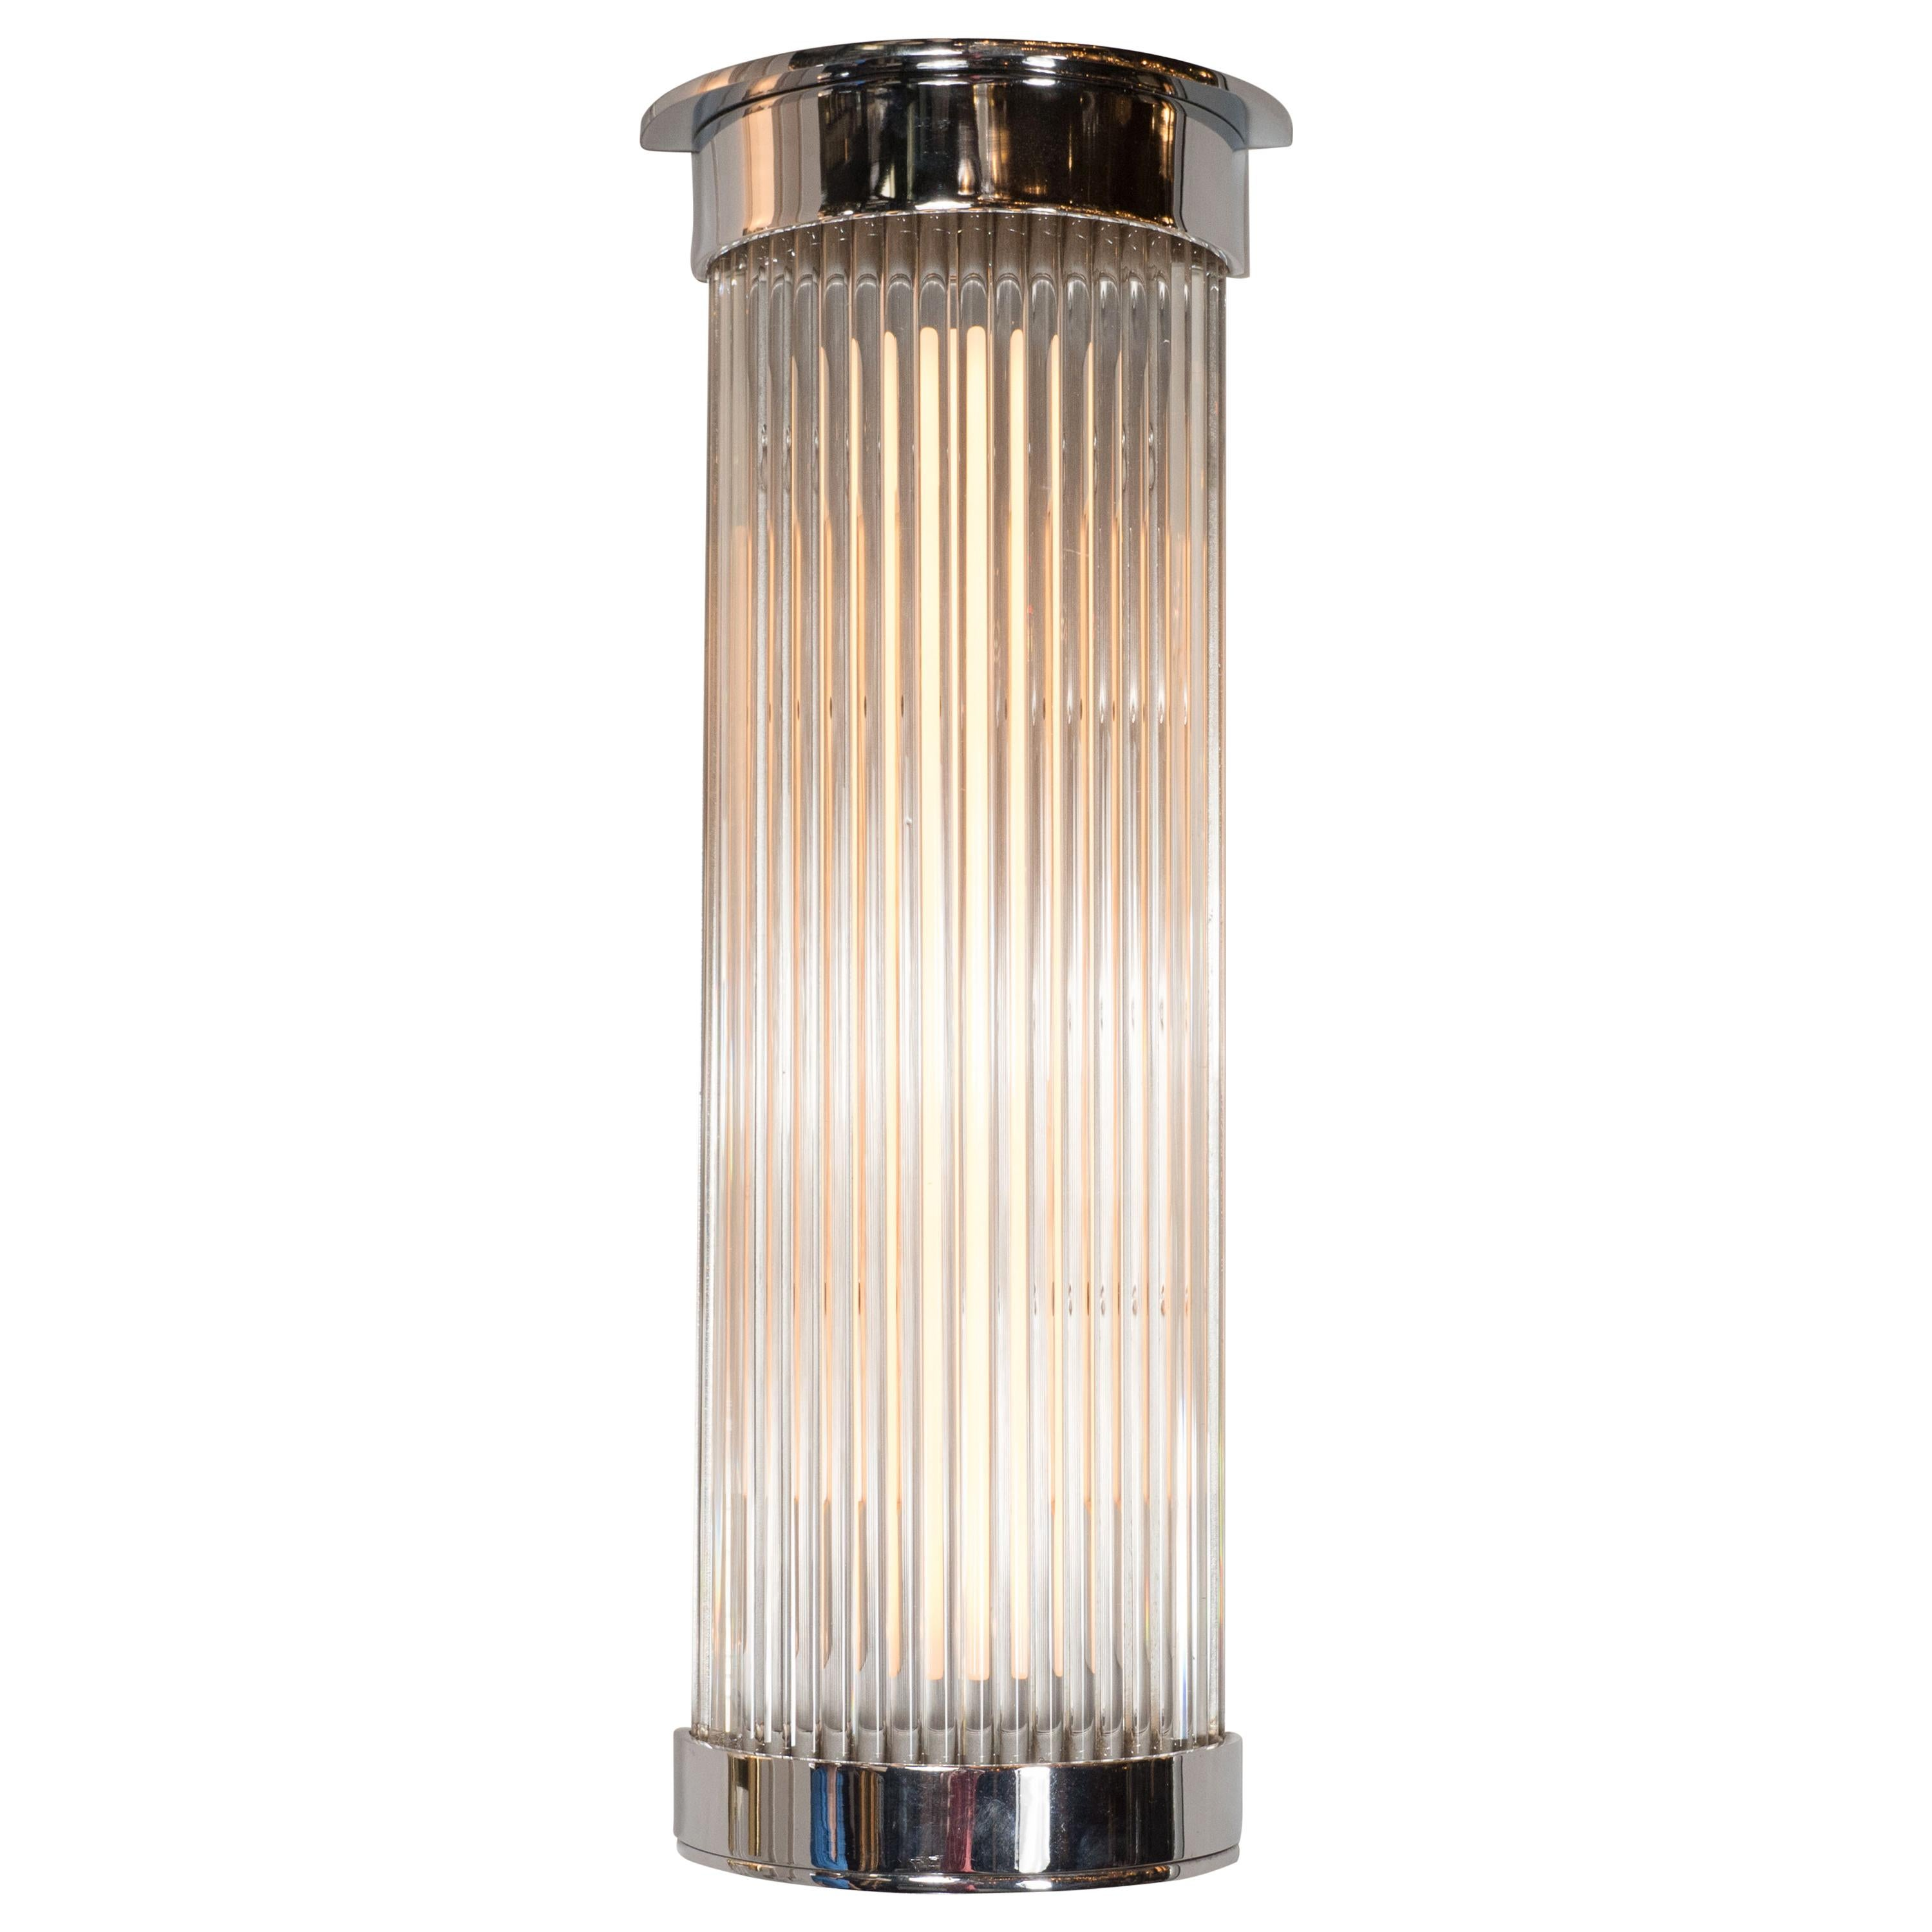 Art Deco Streamlined Machine Age Chrome and Glass Rod Sconce